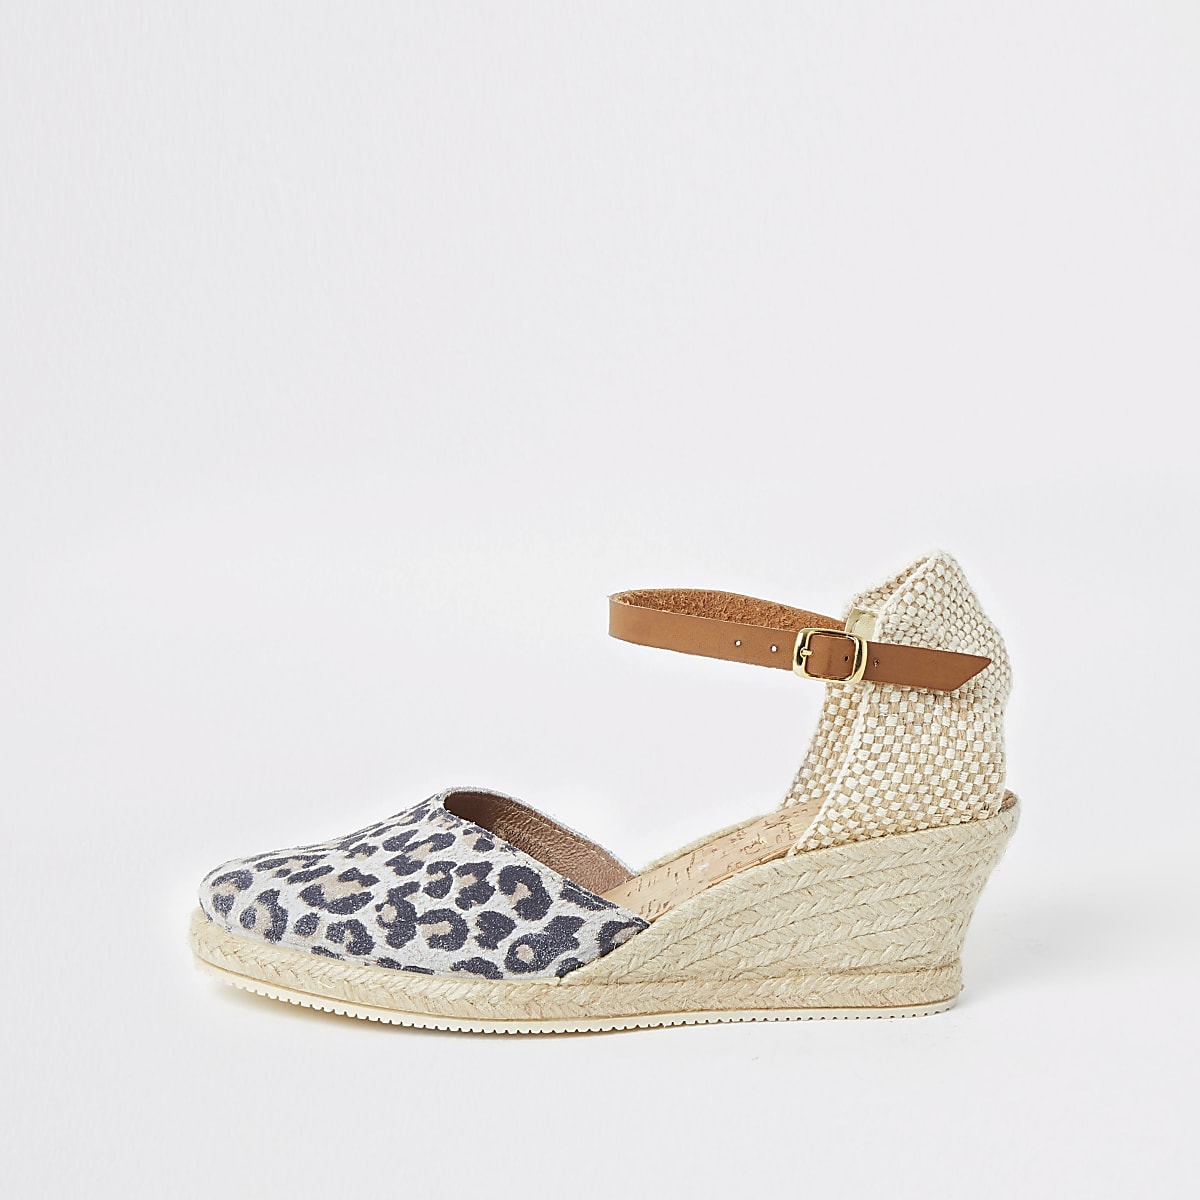 Ravel brown leopard print espadrille wedges